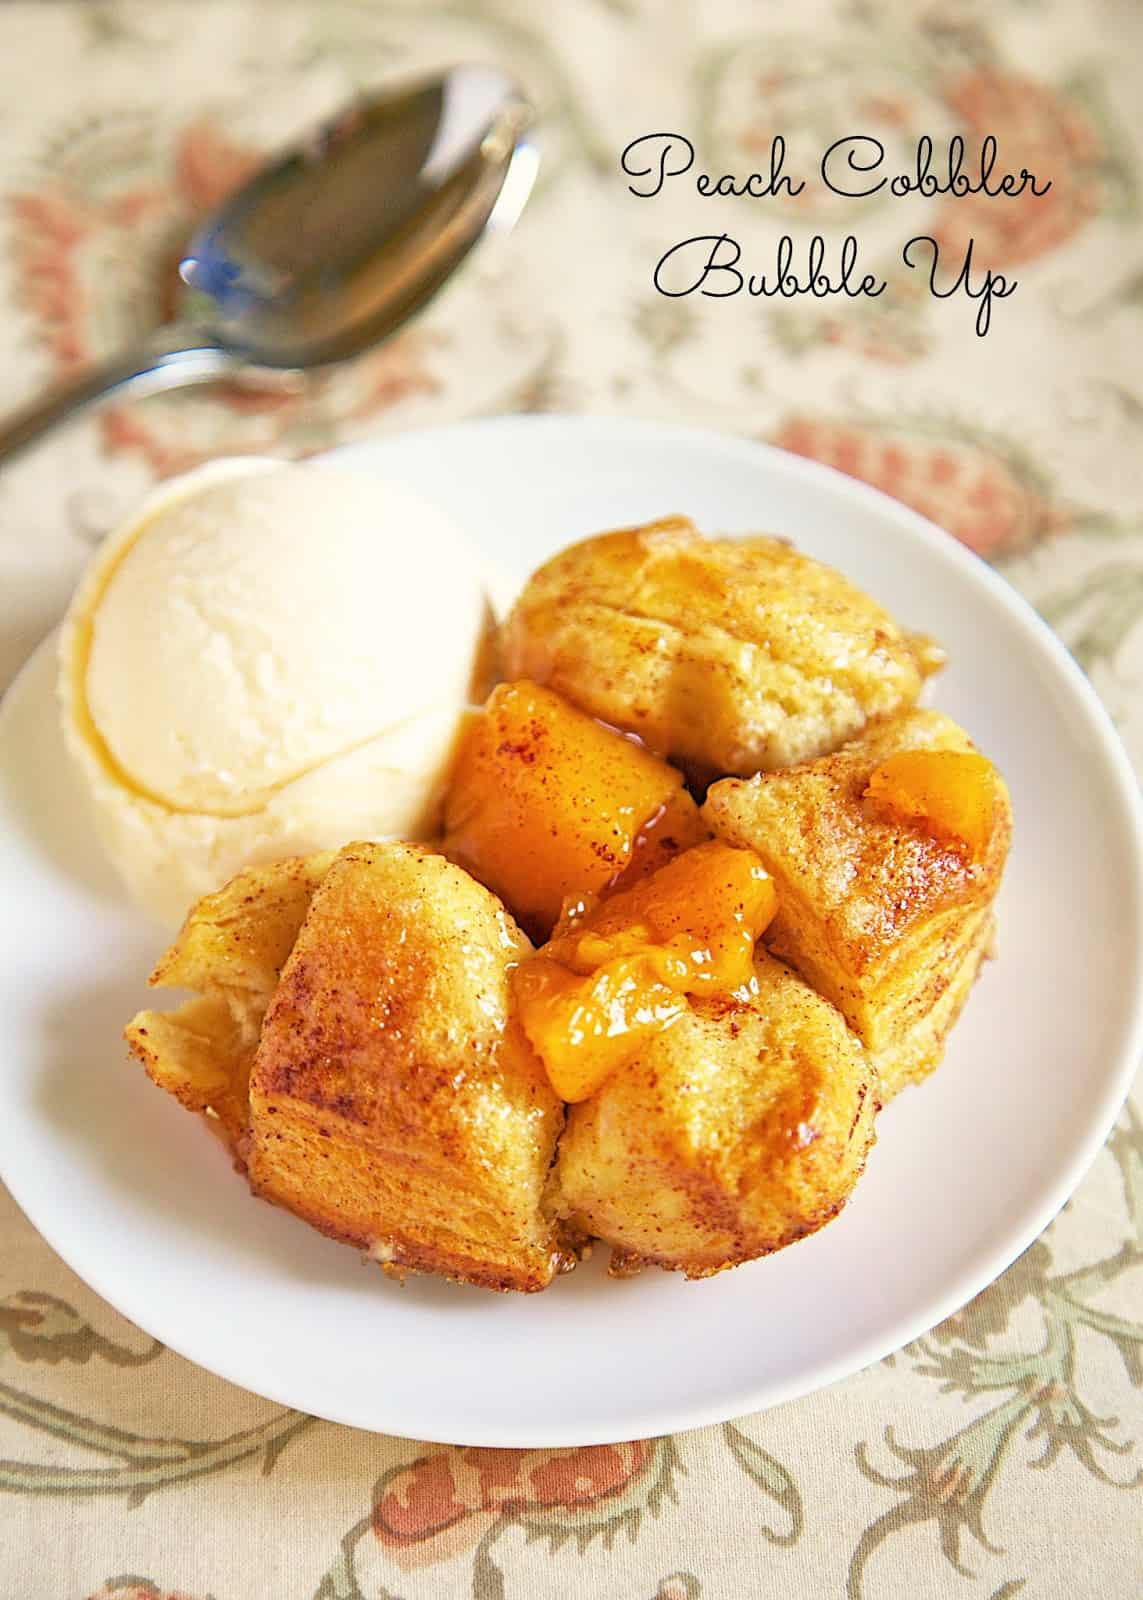 Peach Cobbler Bubble Up recipe. This dessert recipe only has 4 ingredients! It takes about 30 minutes from start to finish. We like to serve this slightly warm with a big scoop of vanilla ice cream! SO good!!